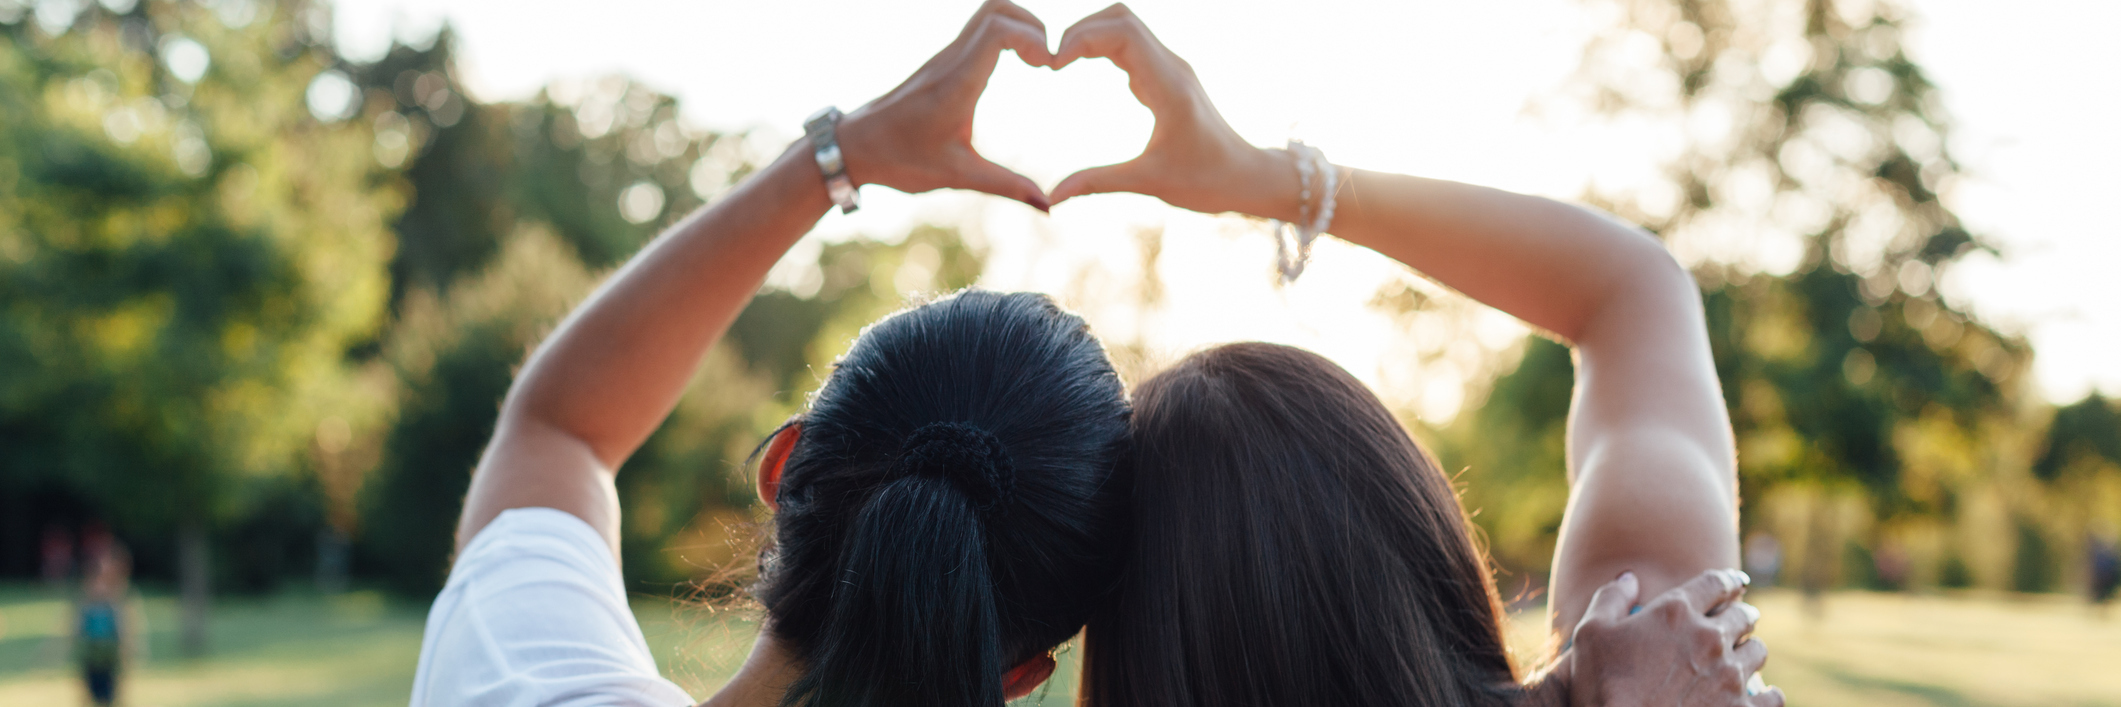 Mom and daughter forming a heart with their hands